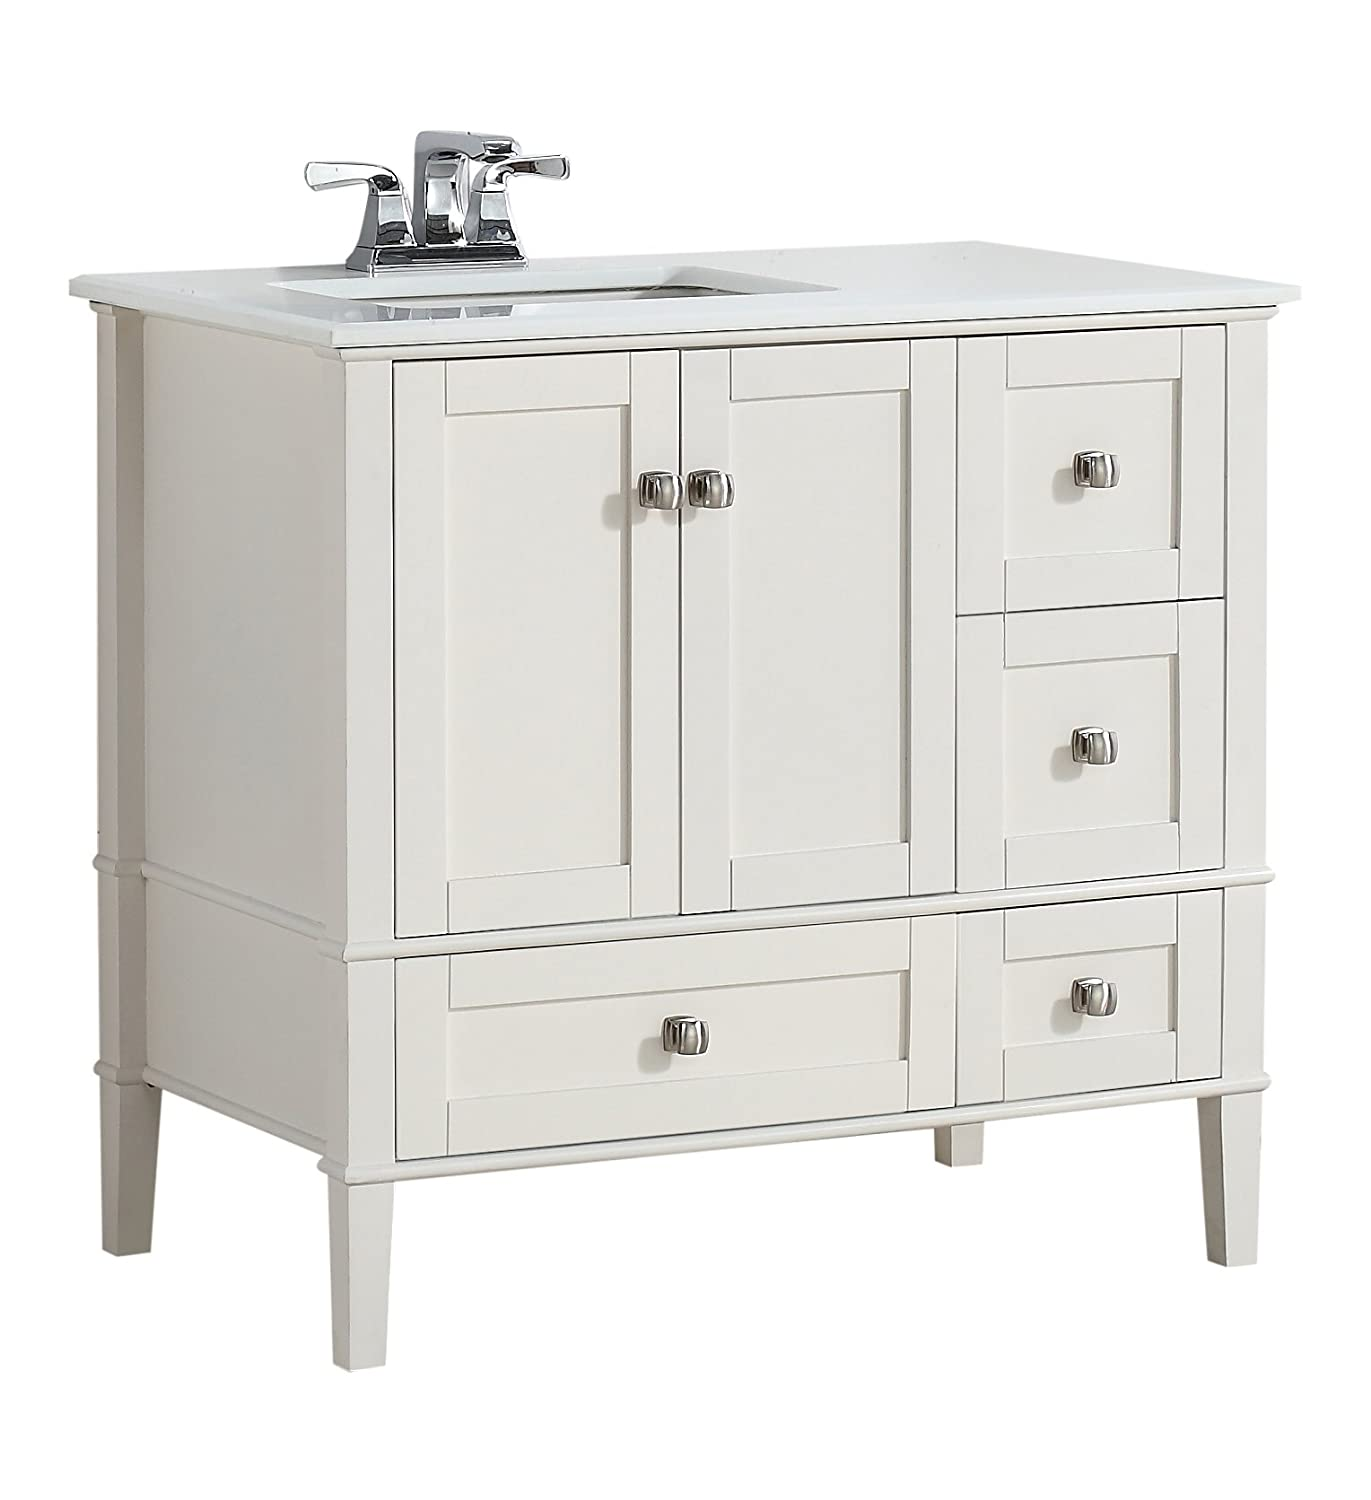 single wood of vanity vanities fresh bathroom in inch vincent solid espresso